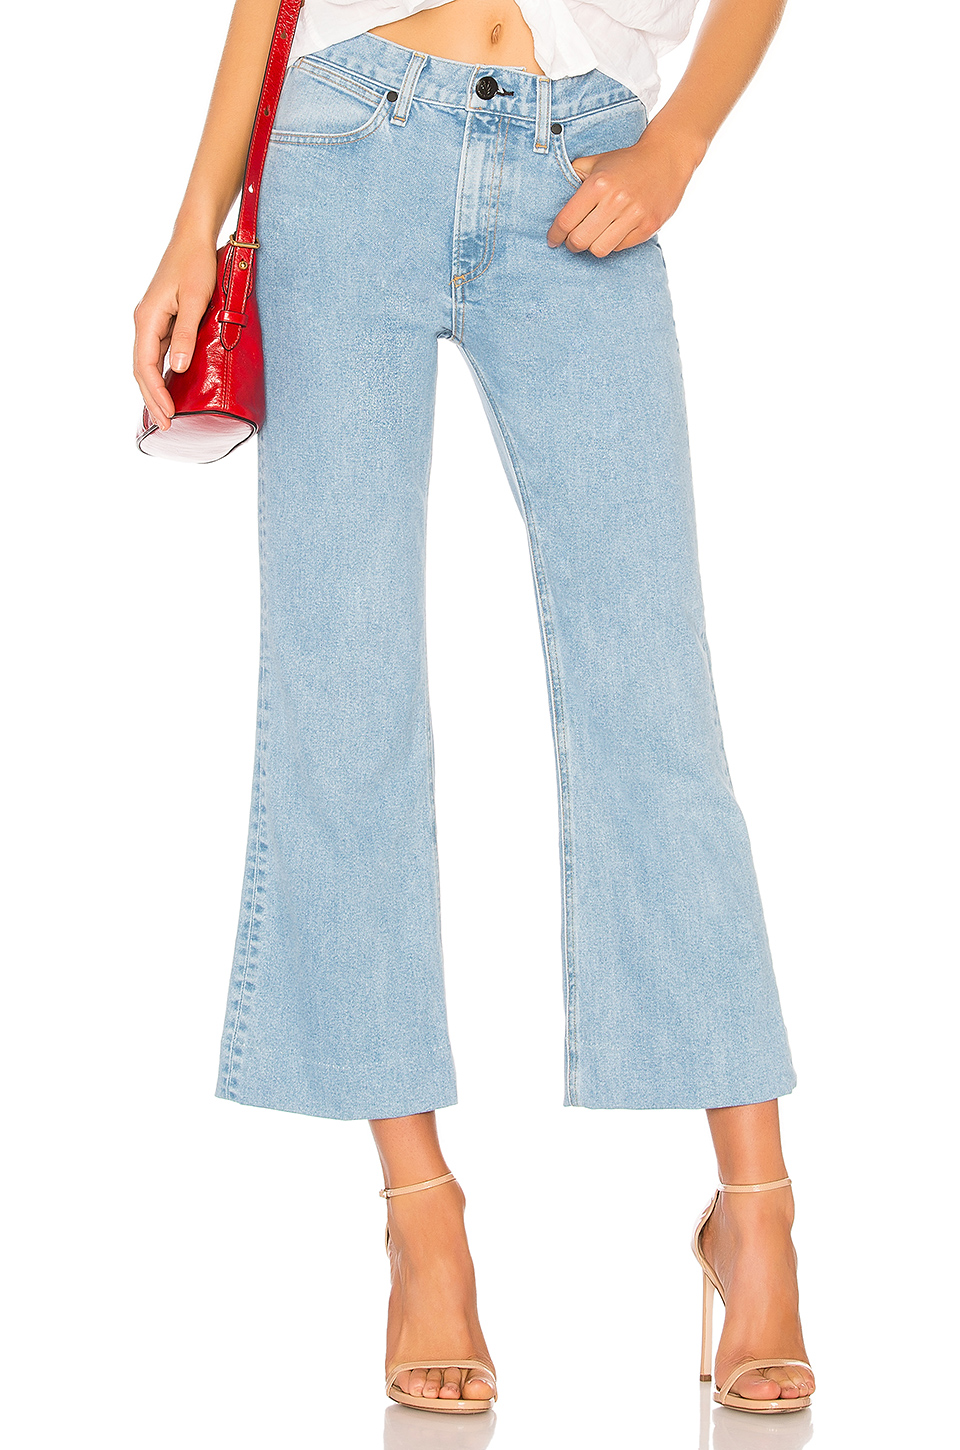 04e8ae2343886 Buy Original rag   bone JEAN Wide Leg Justine Trouser Jean at ...